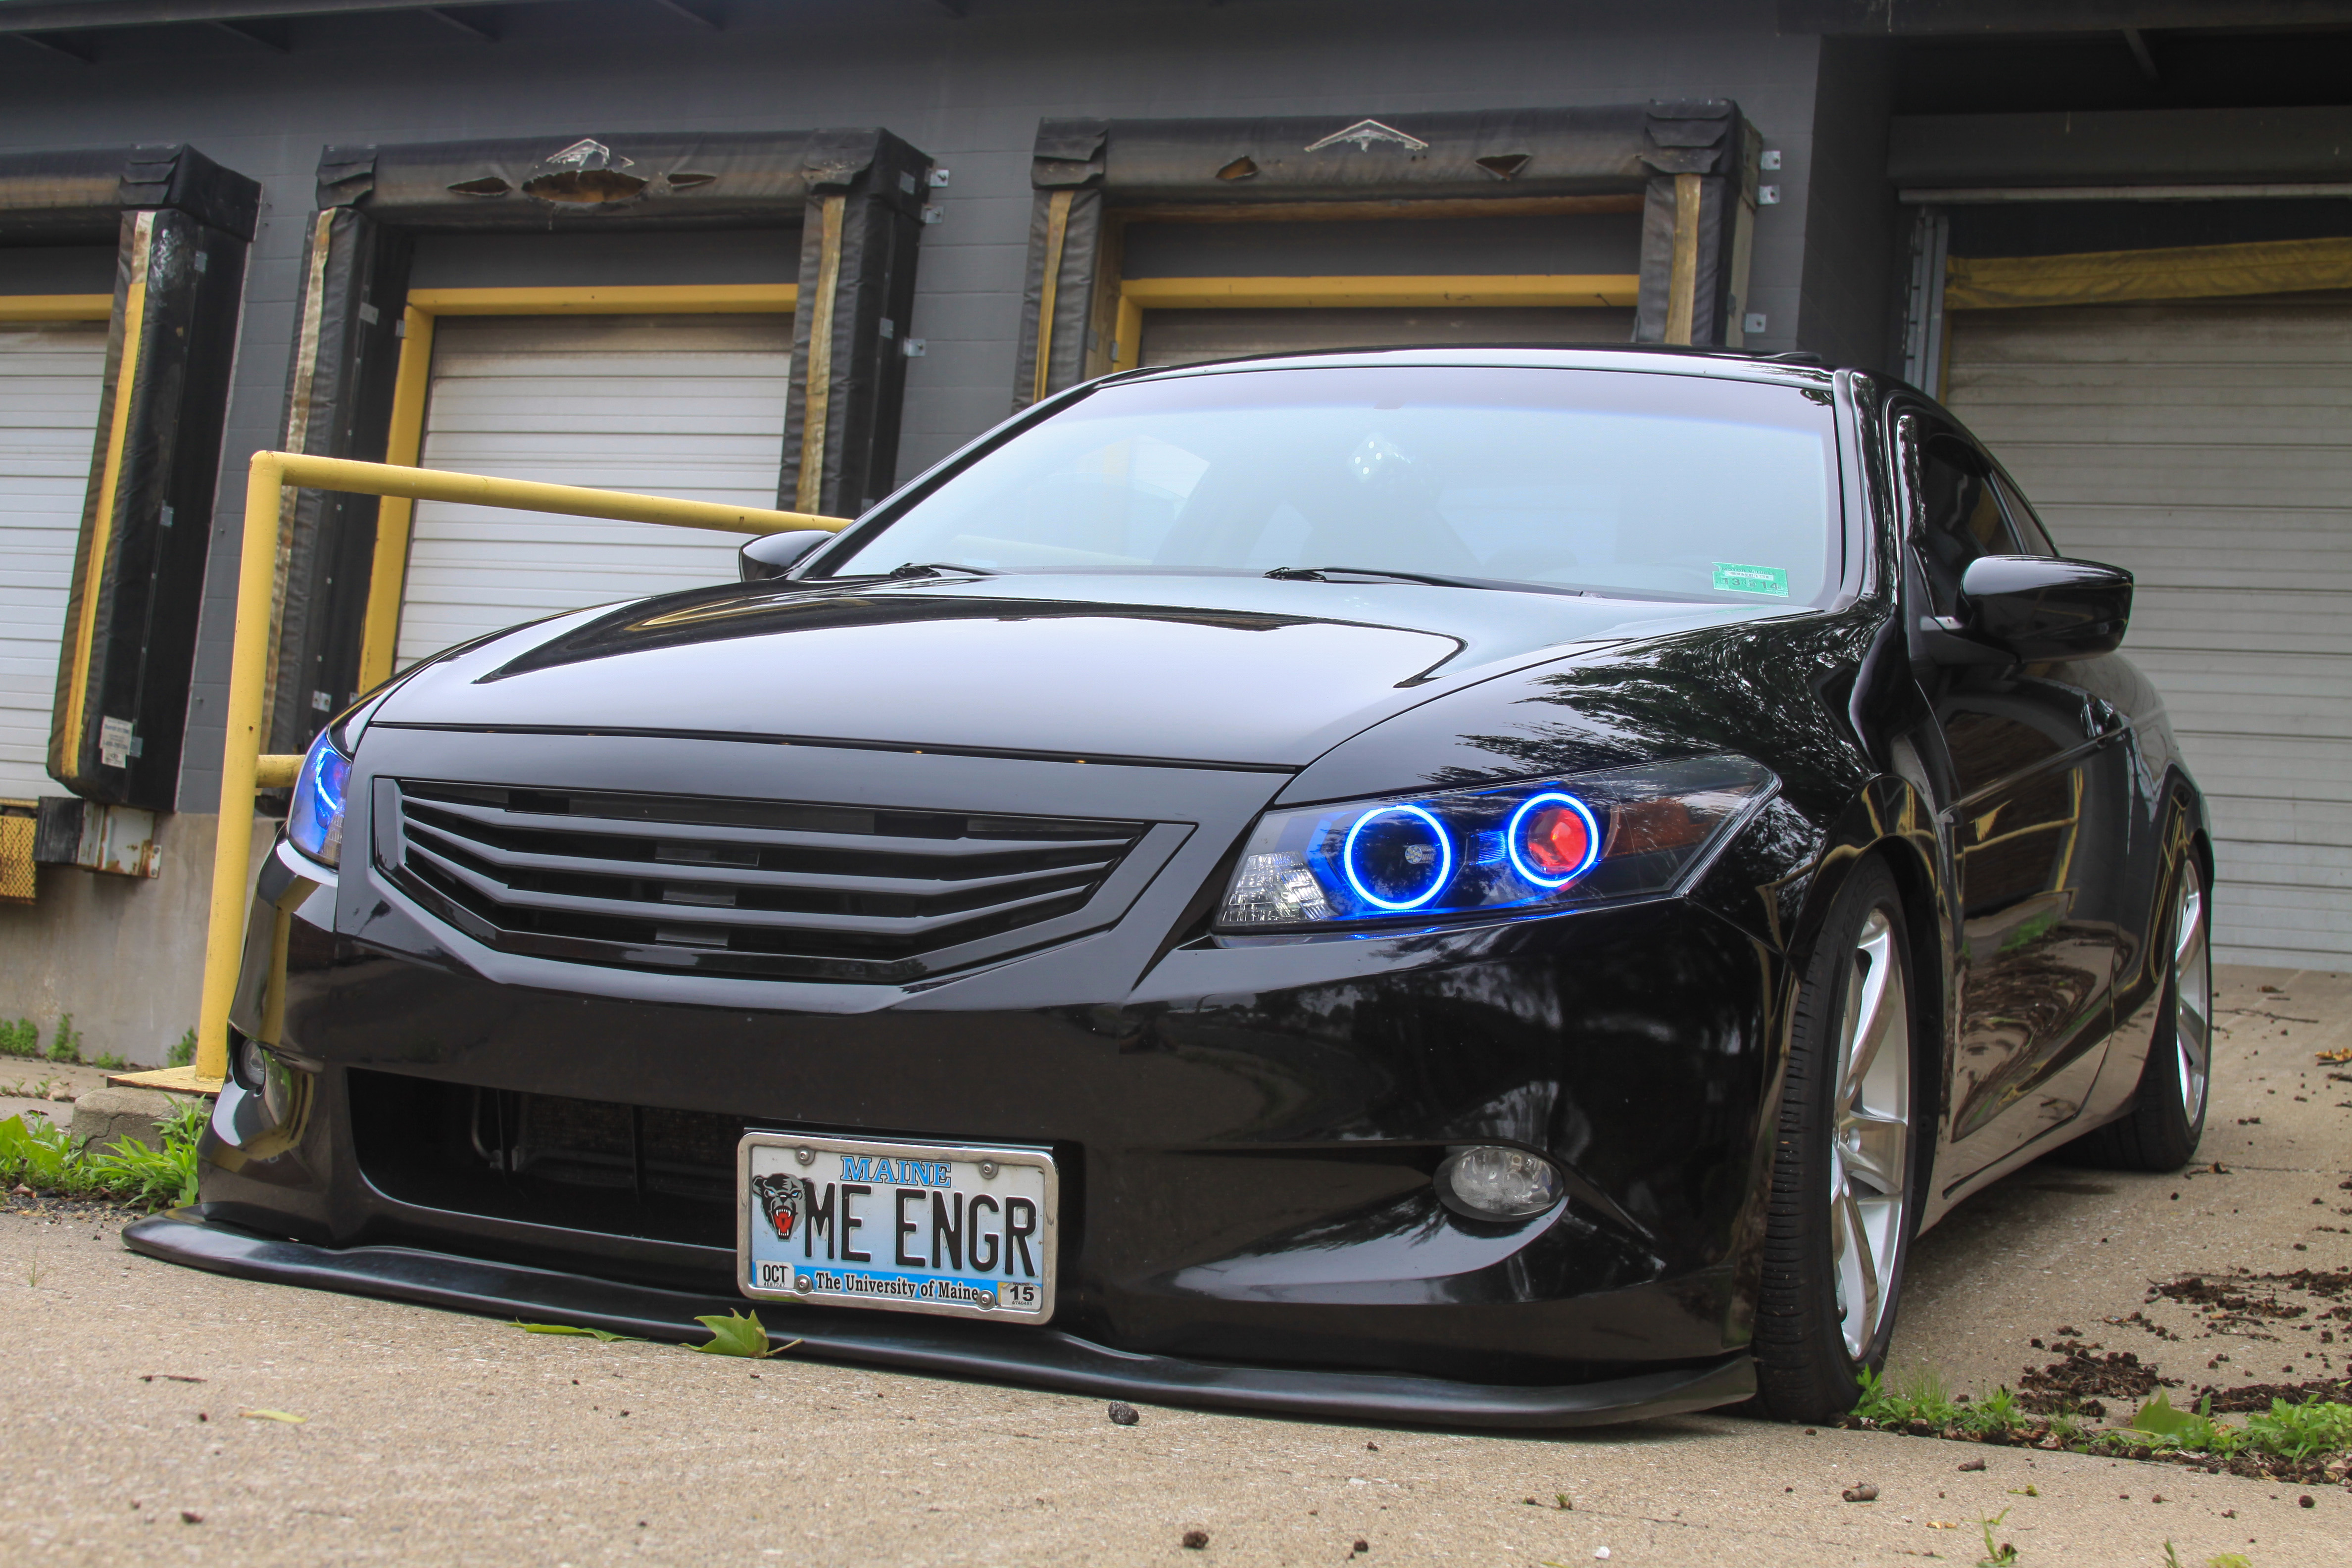 2010 Honda Accord Ex L >> Honda Accord Coupe 2008 Custom | www.pixshark.com - Images Galleries With A Bite!